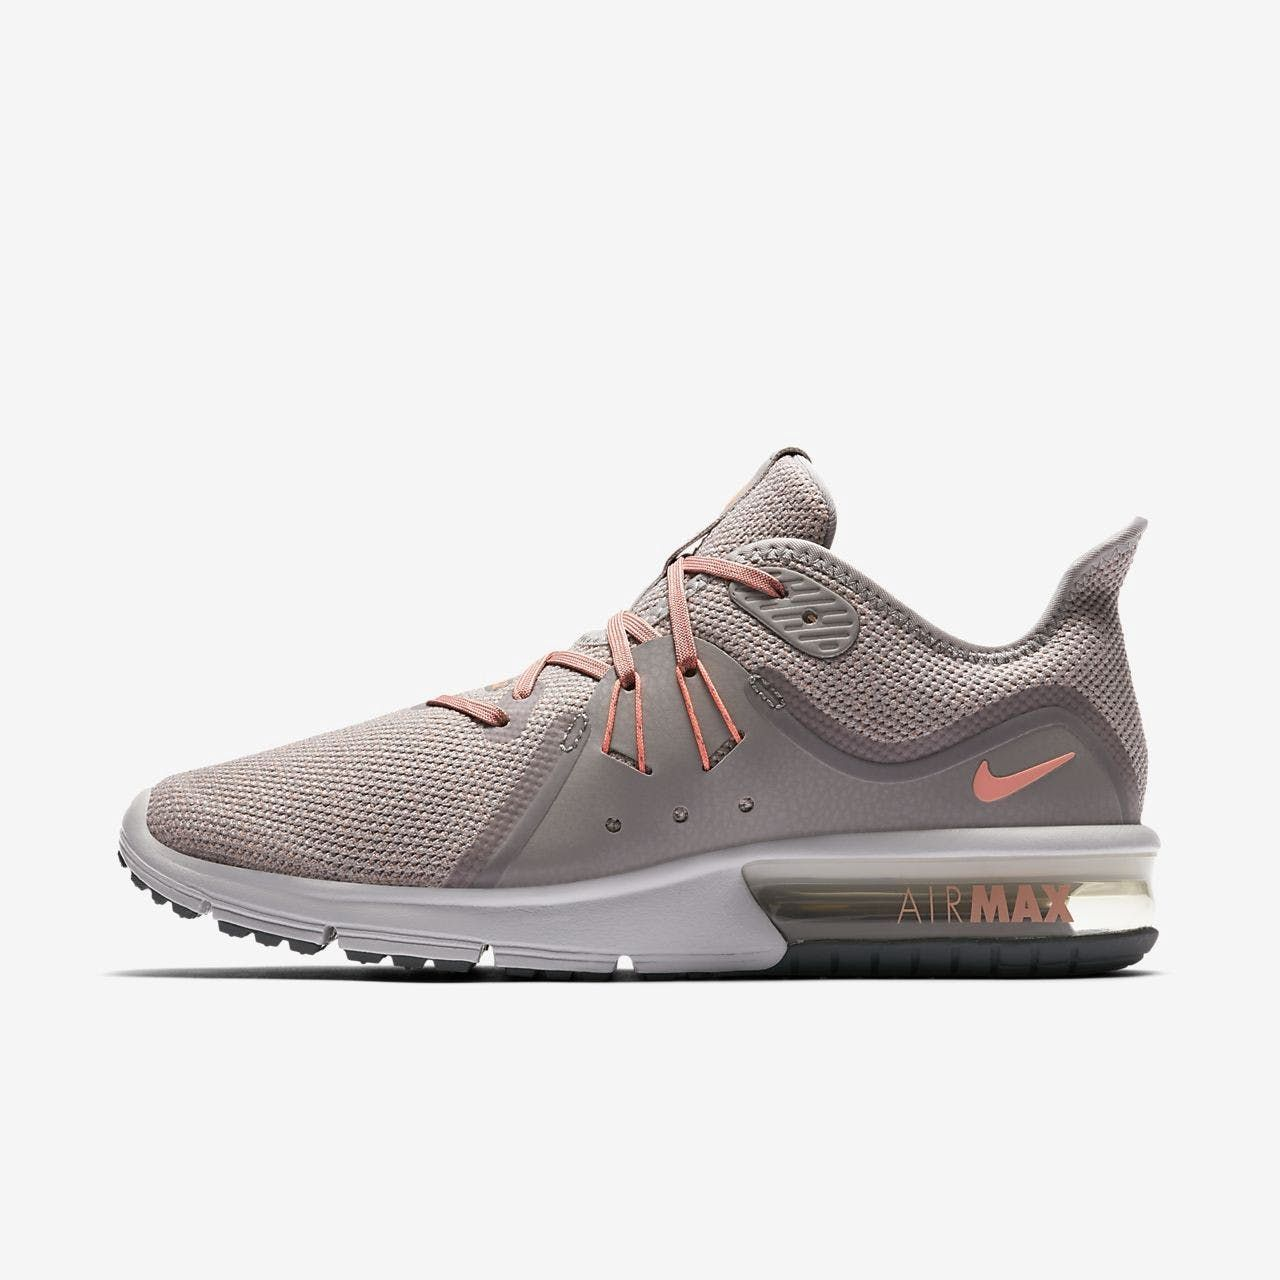 fd6020841b2f FAST LOOK The Nike Ashin Run Modern Women s Shoe takes design cues from  Nike s minimalist running favorites and adapts them for everyday wear.